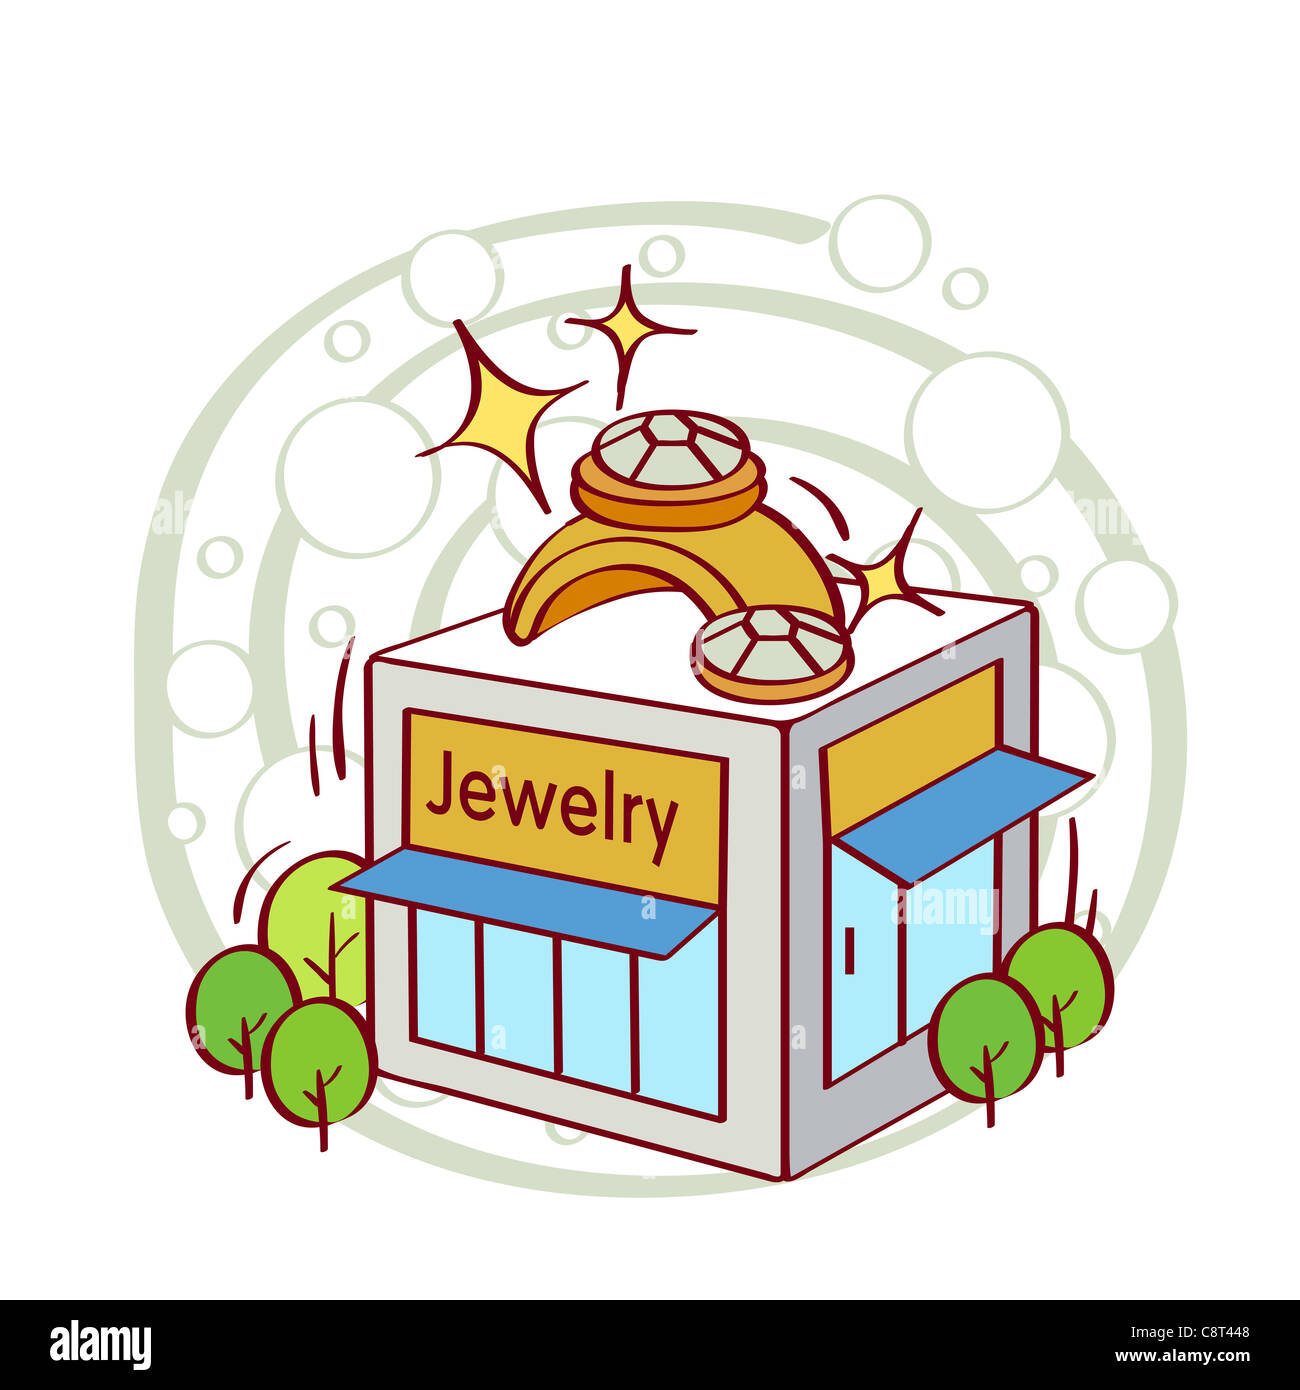 Illustration of gold ring on shop - Stock Image